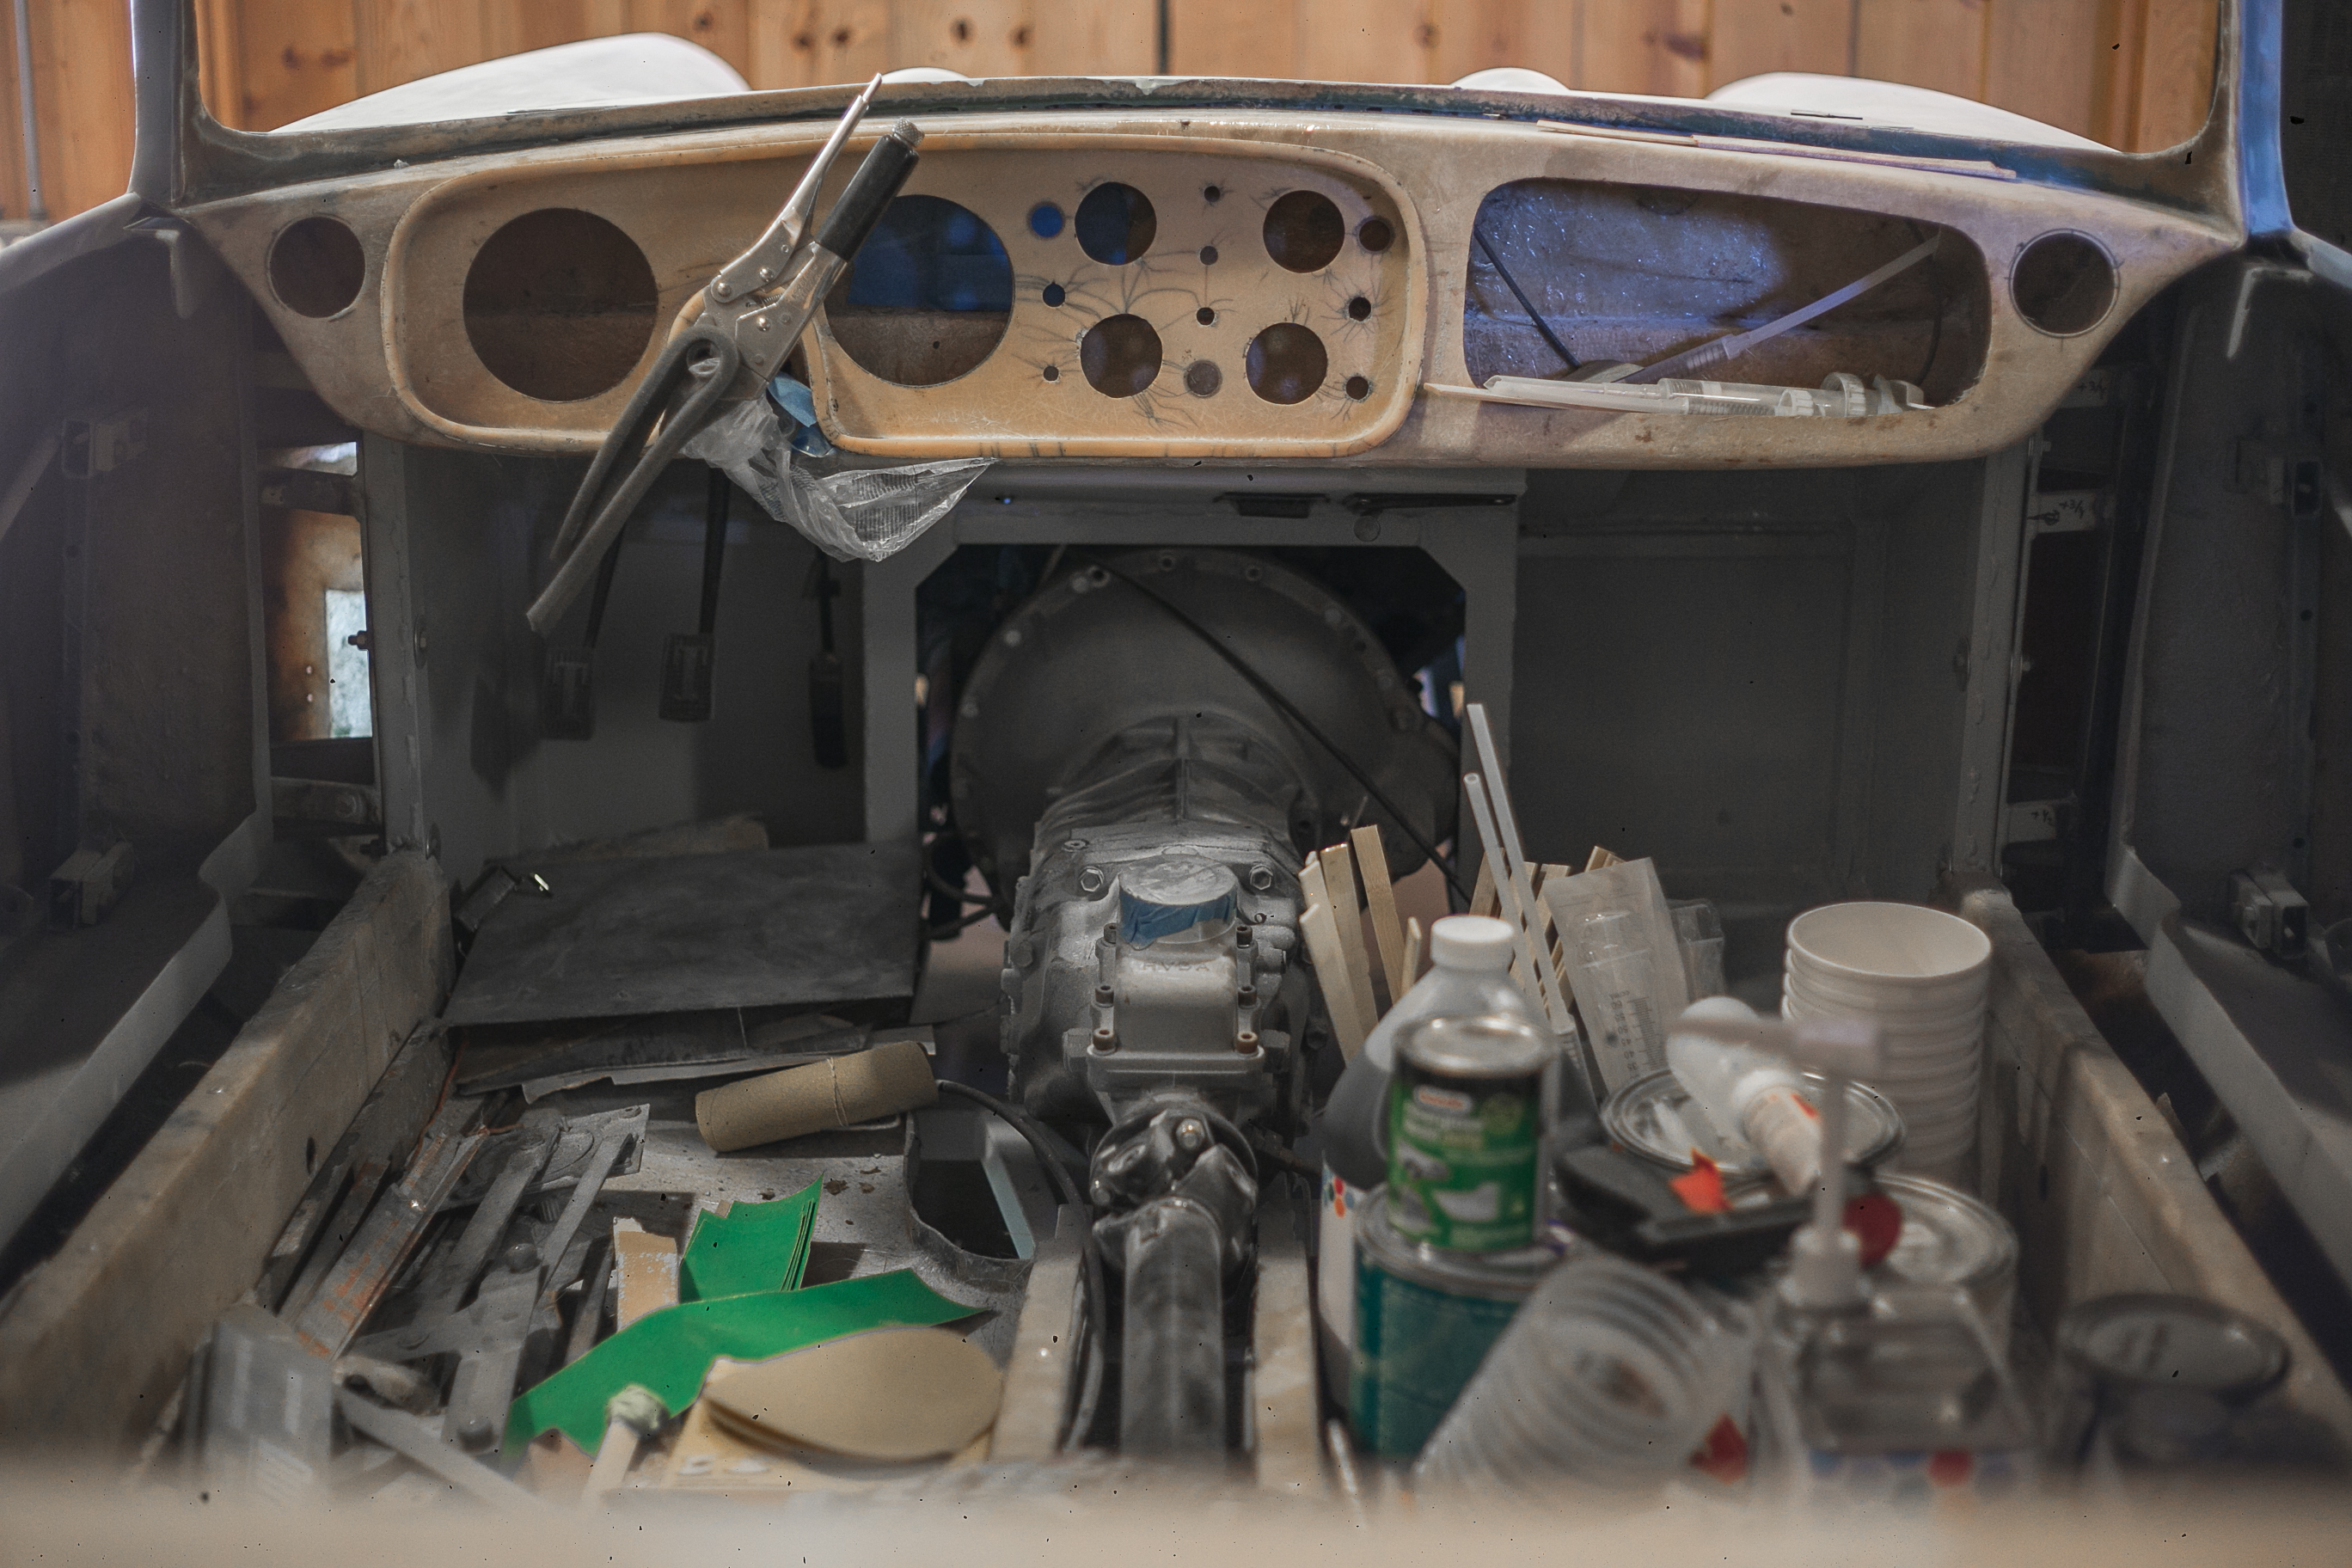 A 1959 Peerless GT in midst of restoration in the Caccavo garage in Thousand Oaks, California.